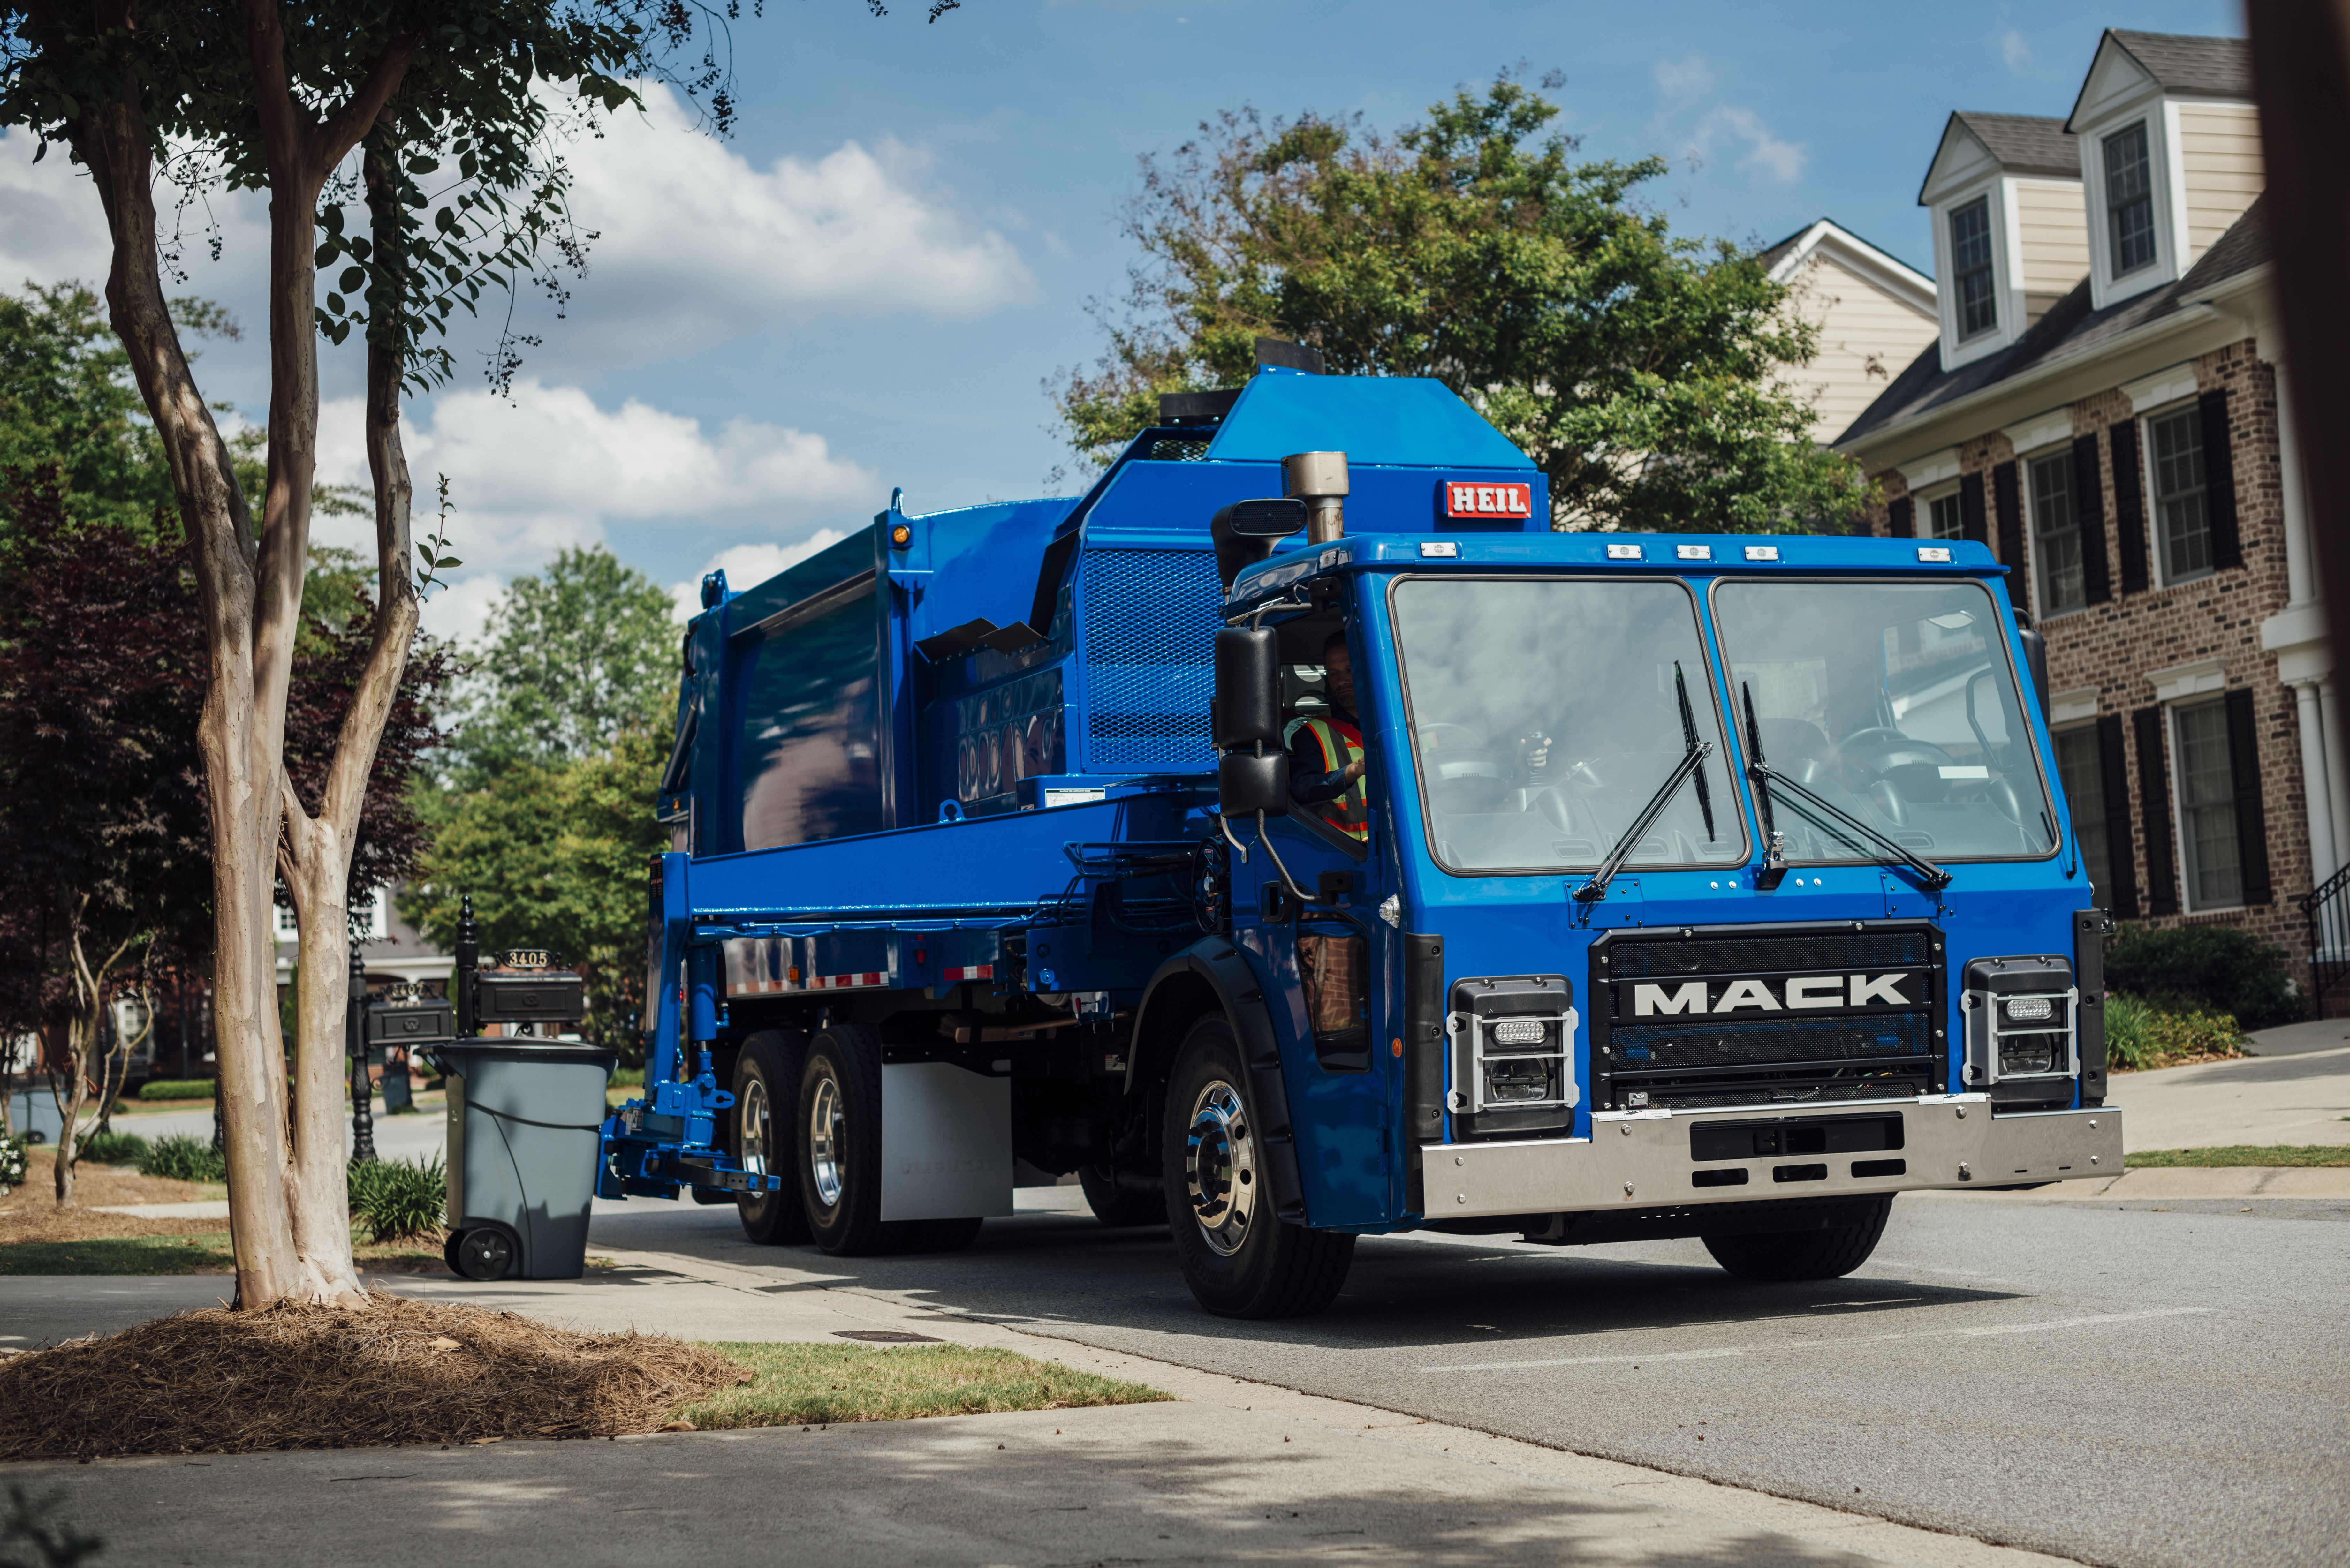 Mack adds new features to LR refuse model Mack trucks